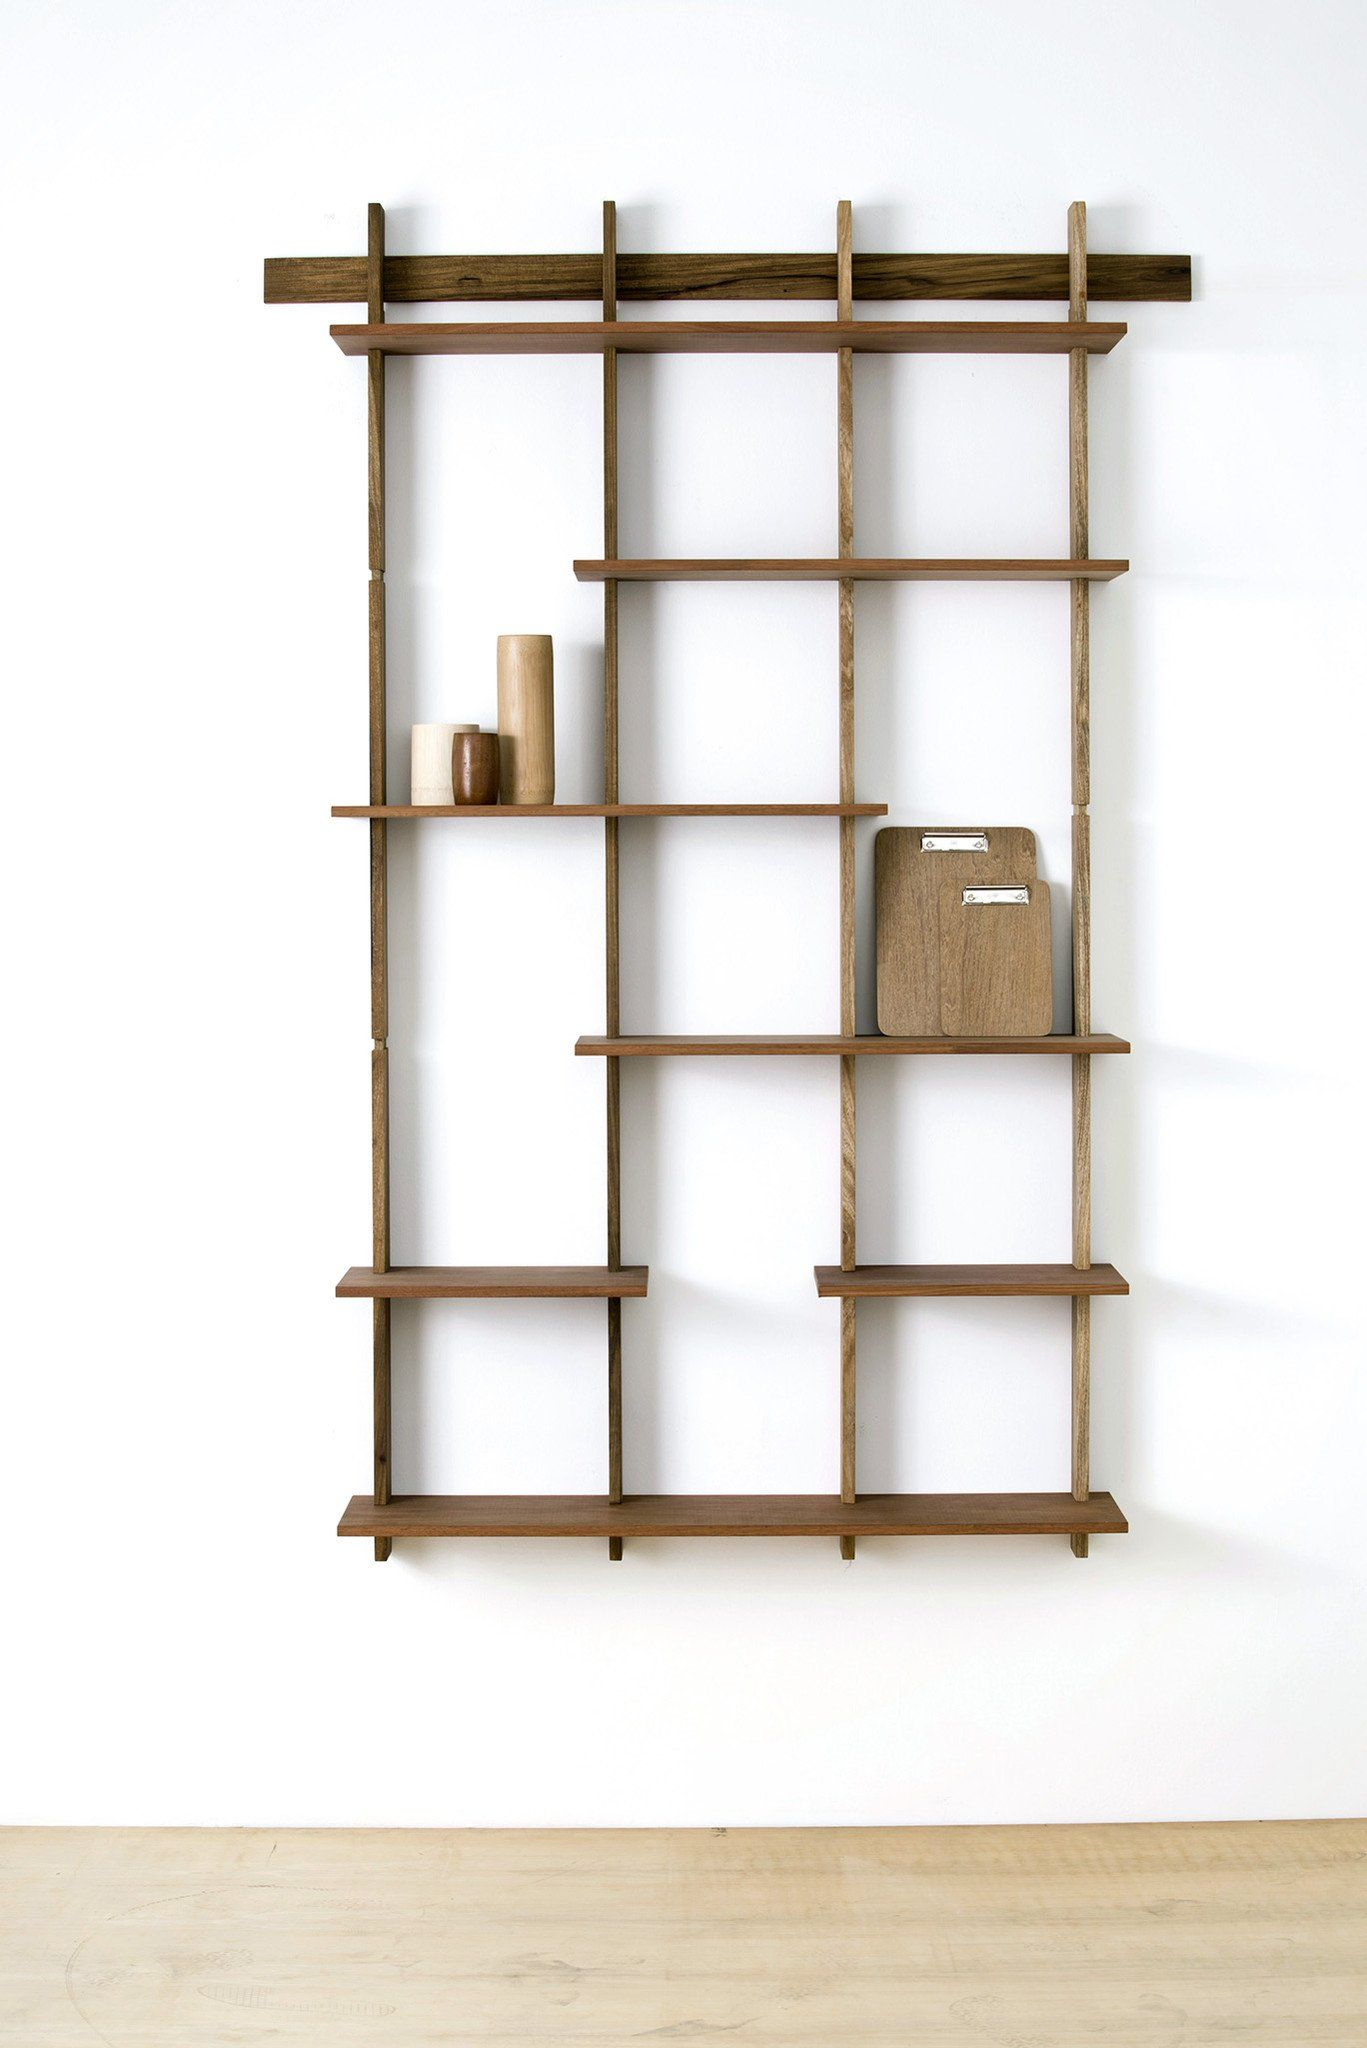 Sticotti Bookshelf Kit E